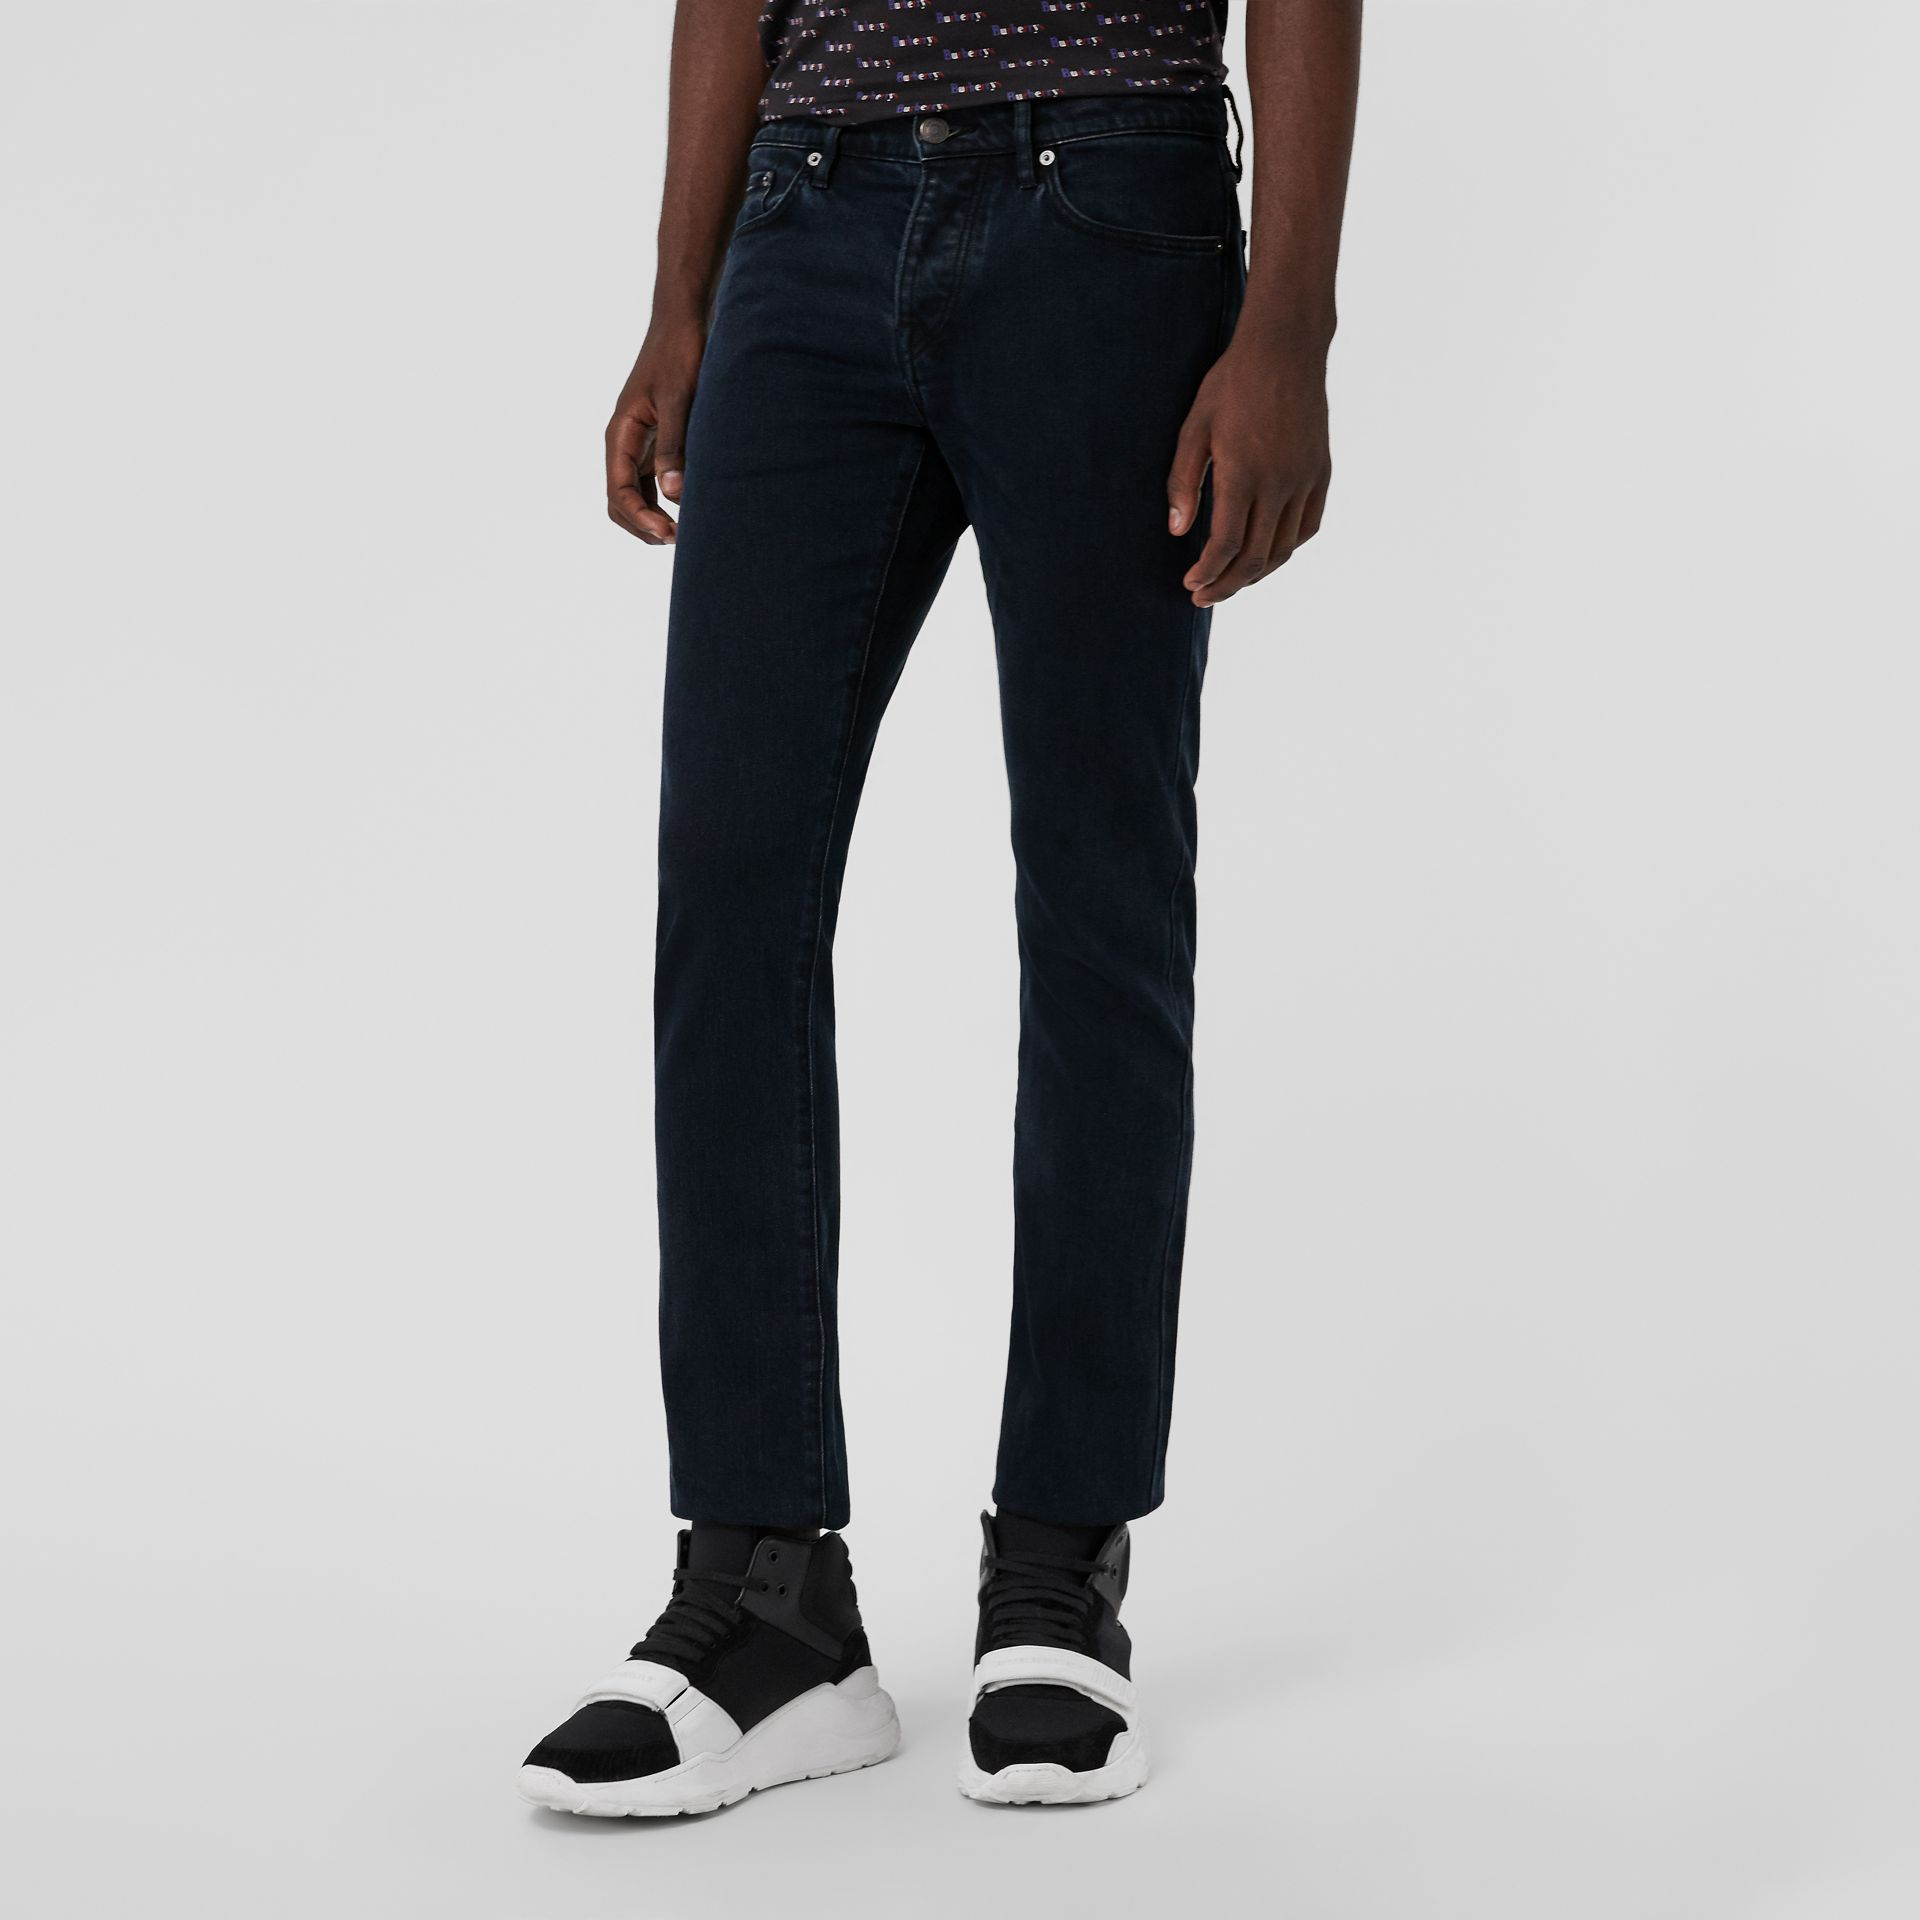 Jean de coupe droite en denim extensible (Indigo Sombre) - Homme | Burberry - photo de la galerie 4